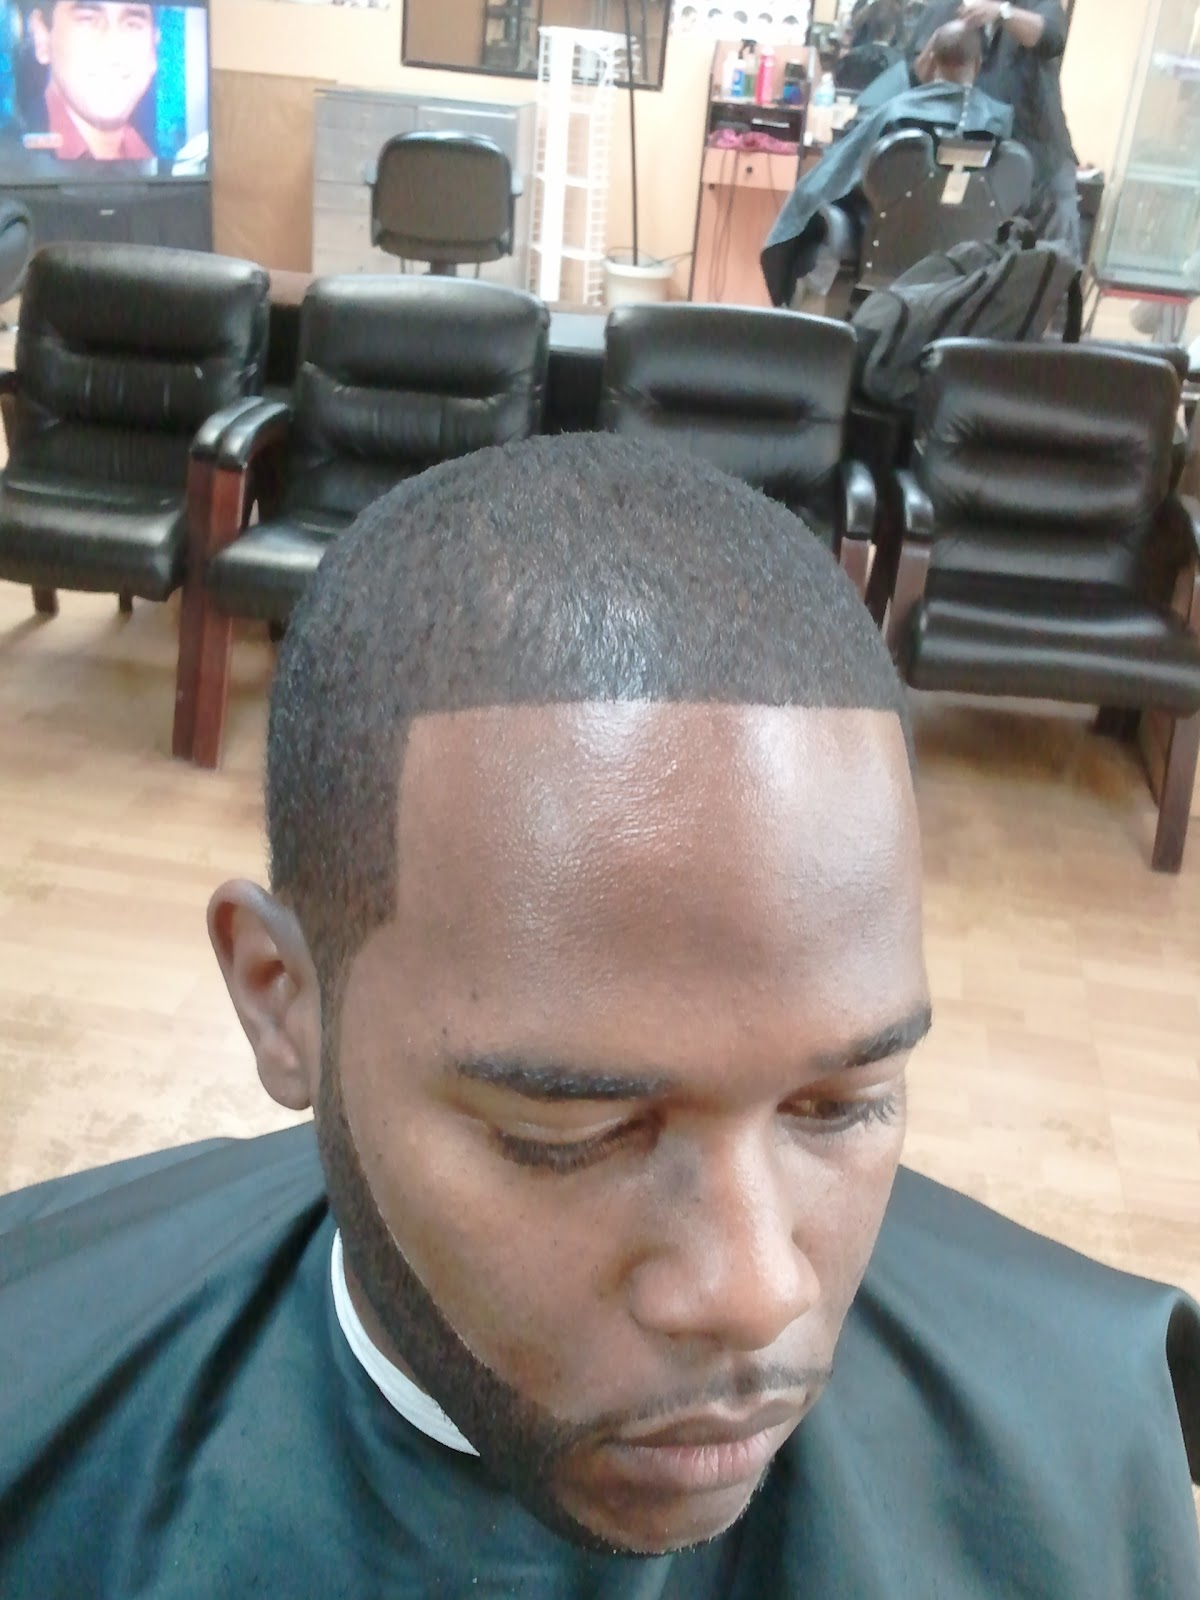 Bishop Aka 2pac Juice Haircut By Ken The Barber Haircuts In Chicago